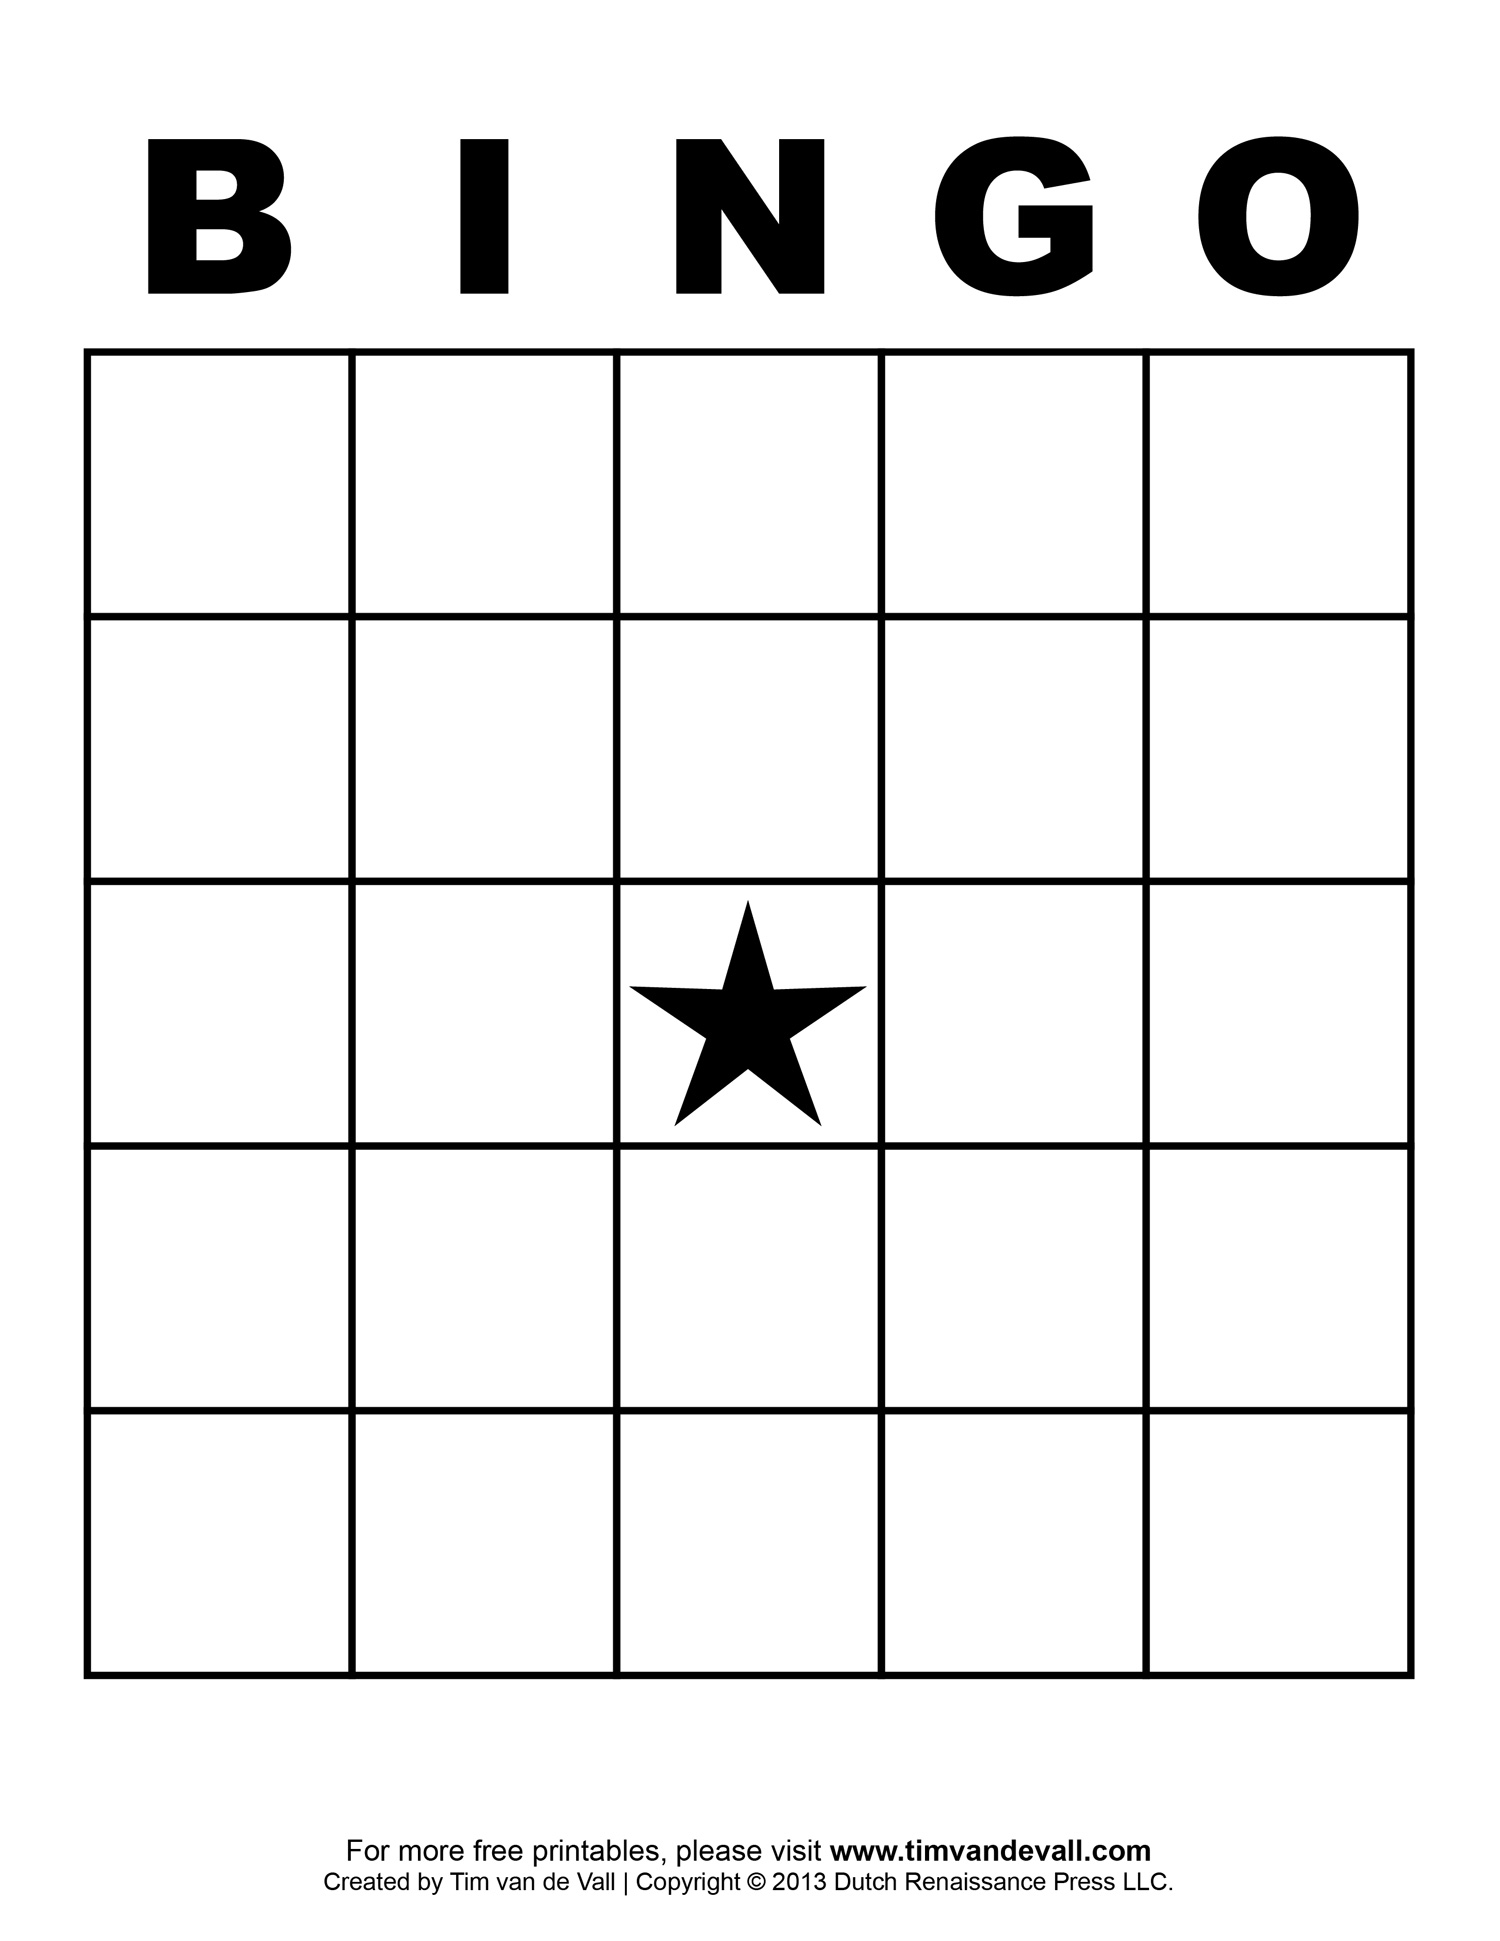 photograph regarding Free Printable Bingo Cards With Numbers named Blank Bingo Template - Tims Printables